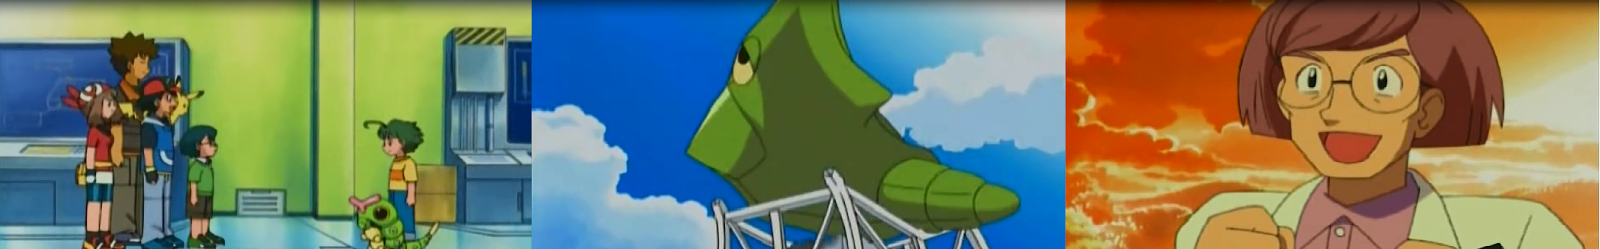 Pokemon Capitulo 49 Temporada 8 El Gran Dilema De Caterpie